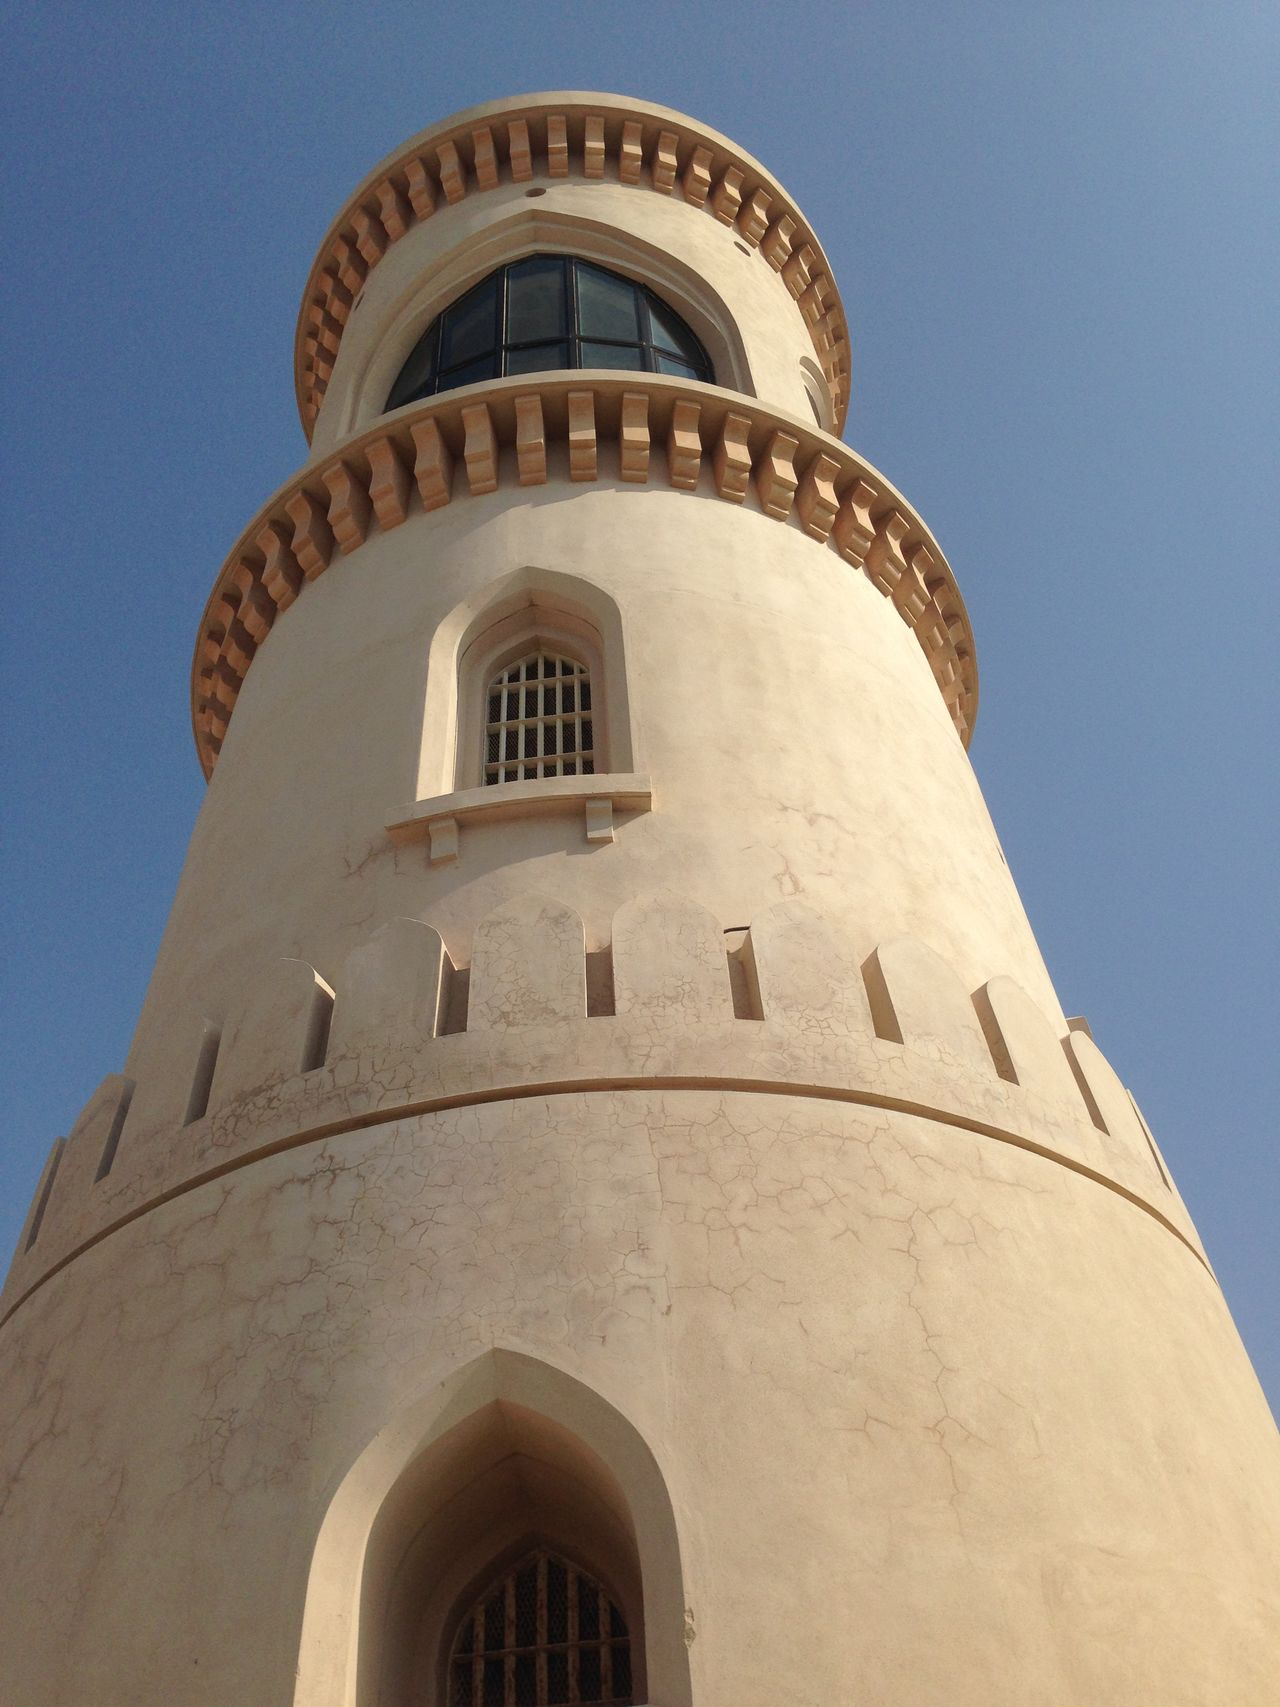 Architecture Building Exterior Built Structure Clear Sky Day Lighthouse Low Angle View No People Oman Outdoors Sky Surface Level Tower Şūr